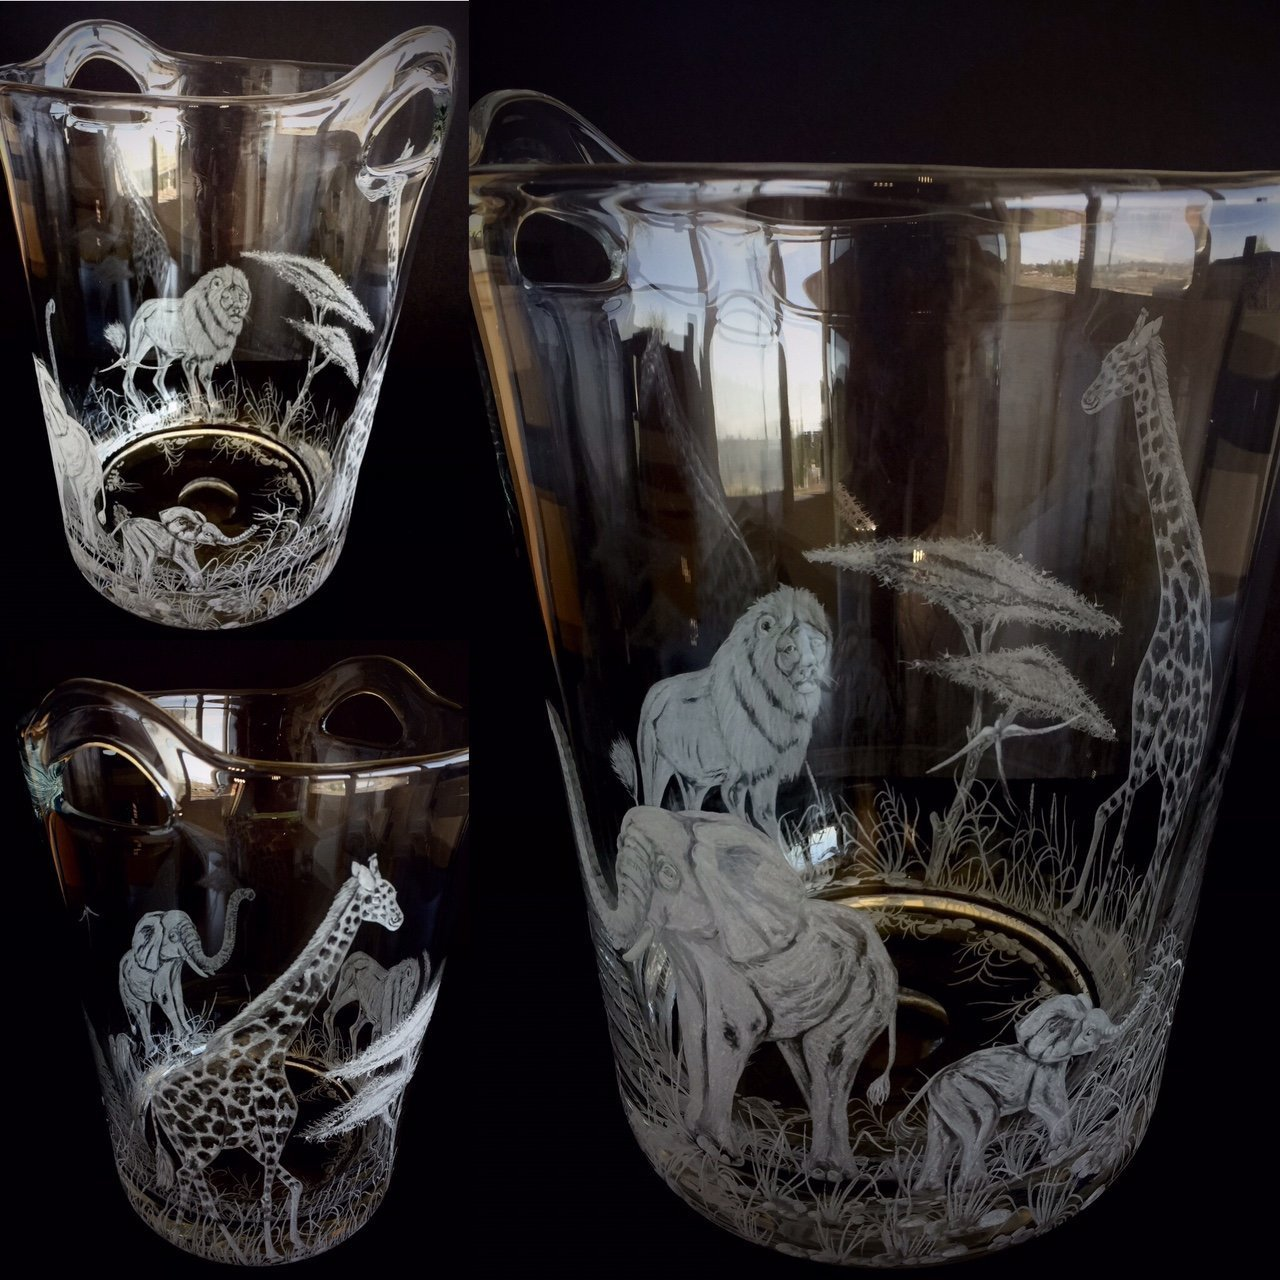 Hand Engraved Ice Bucket African Animals, Lion, Giraffe and Elephant, African Safari Scene, Engraved Bar Ware, Wedding Gifts Etched by Akoko Art Handengraved Crystal Glass (Image #4)